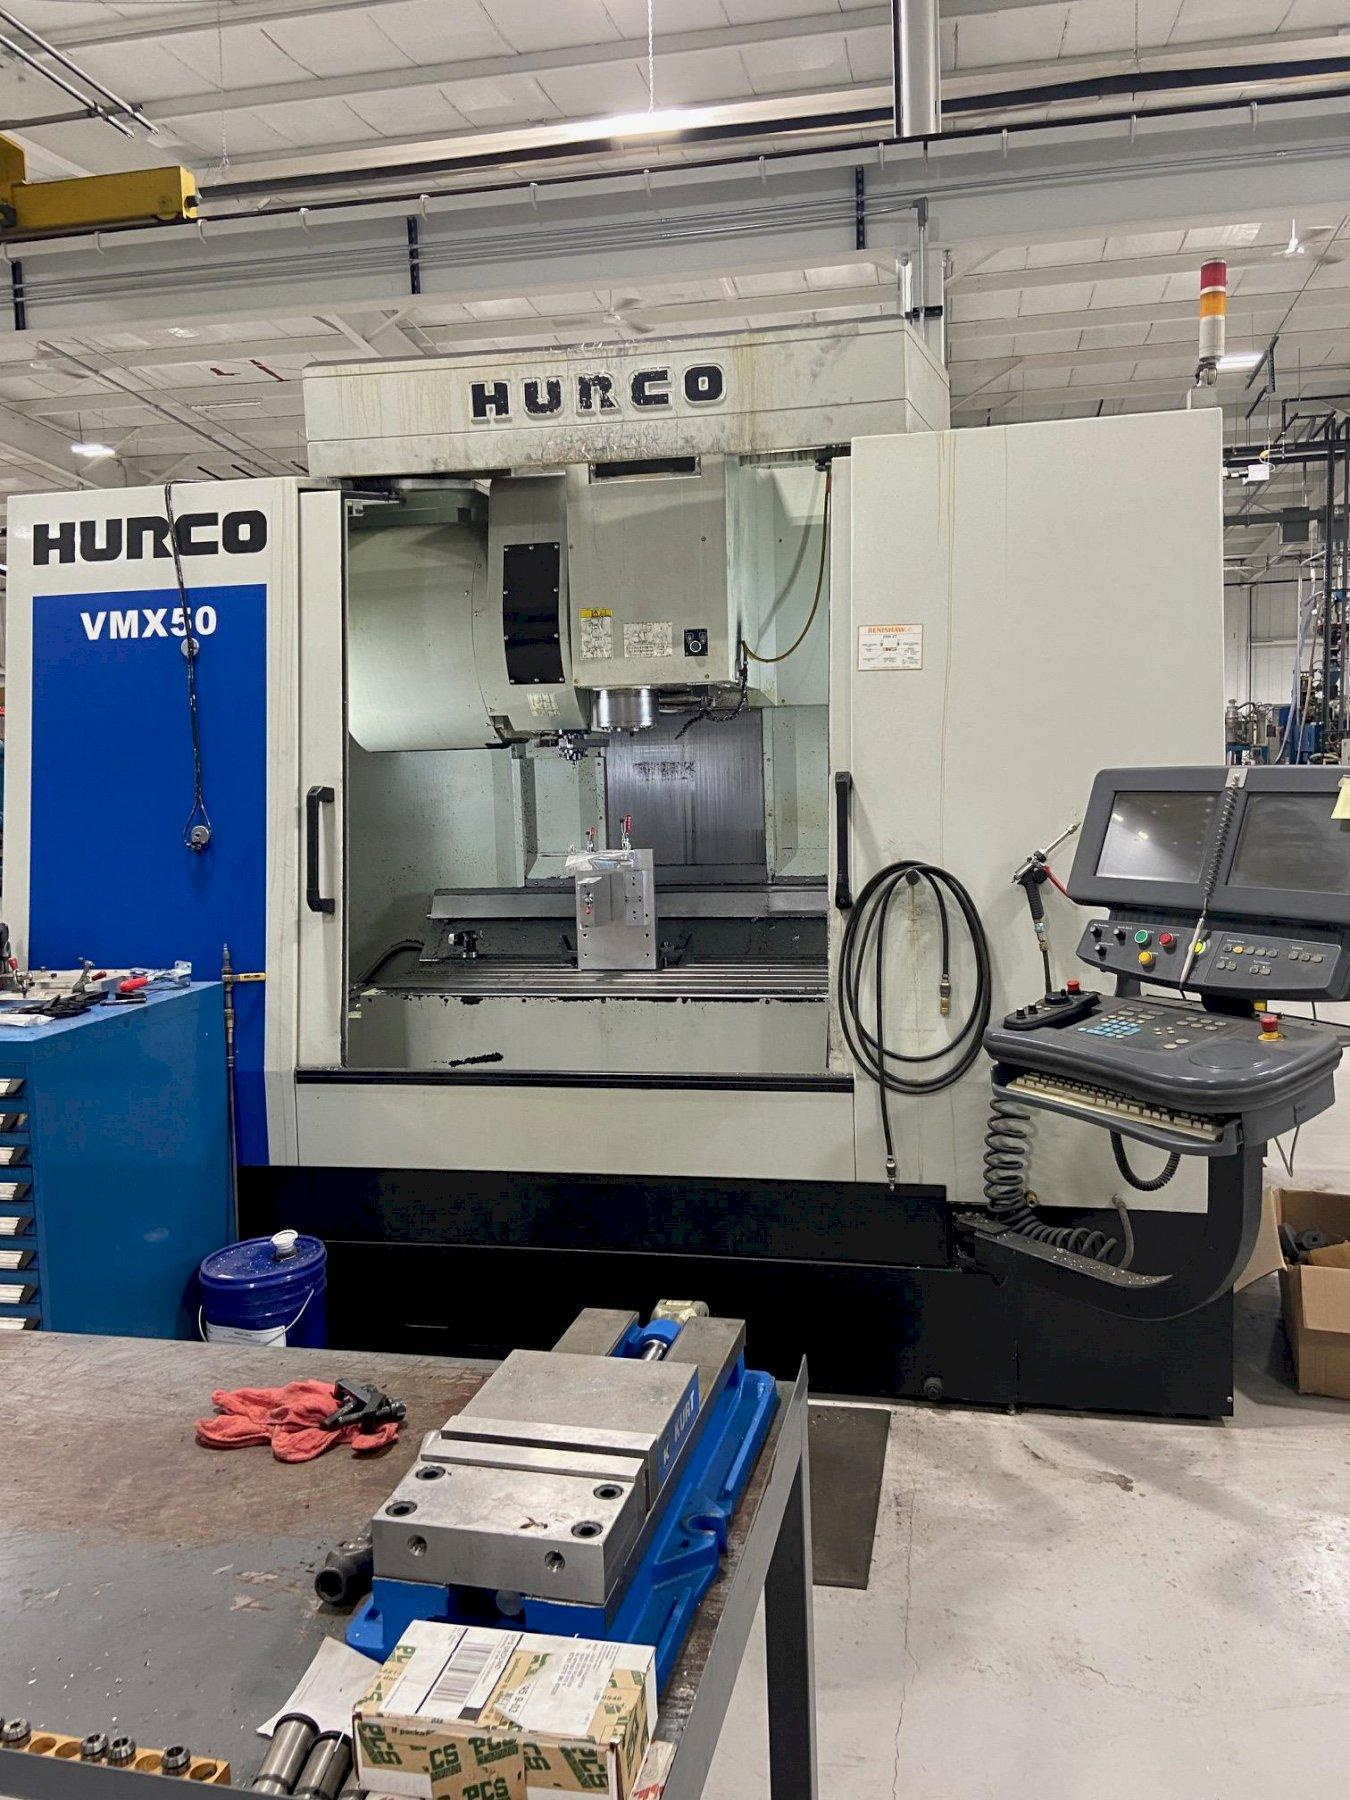 Hurco VMX-50/40 CNC Vertical Machining Center (2012)